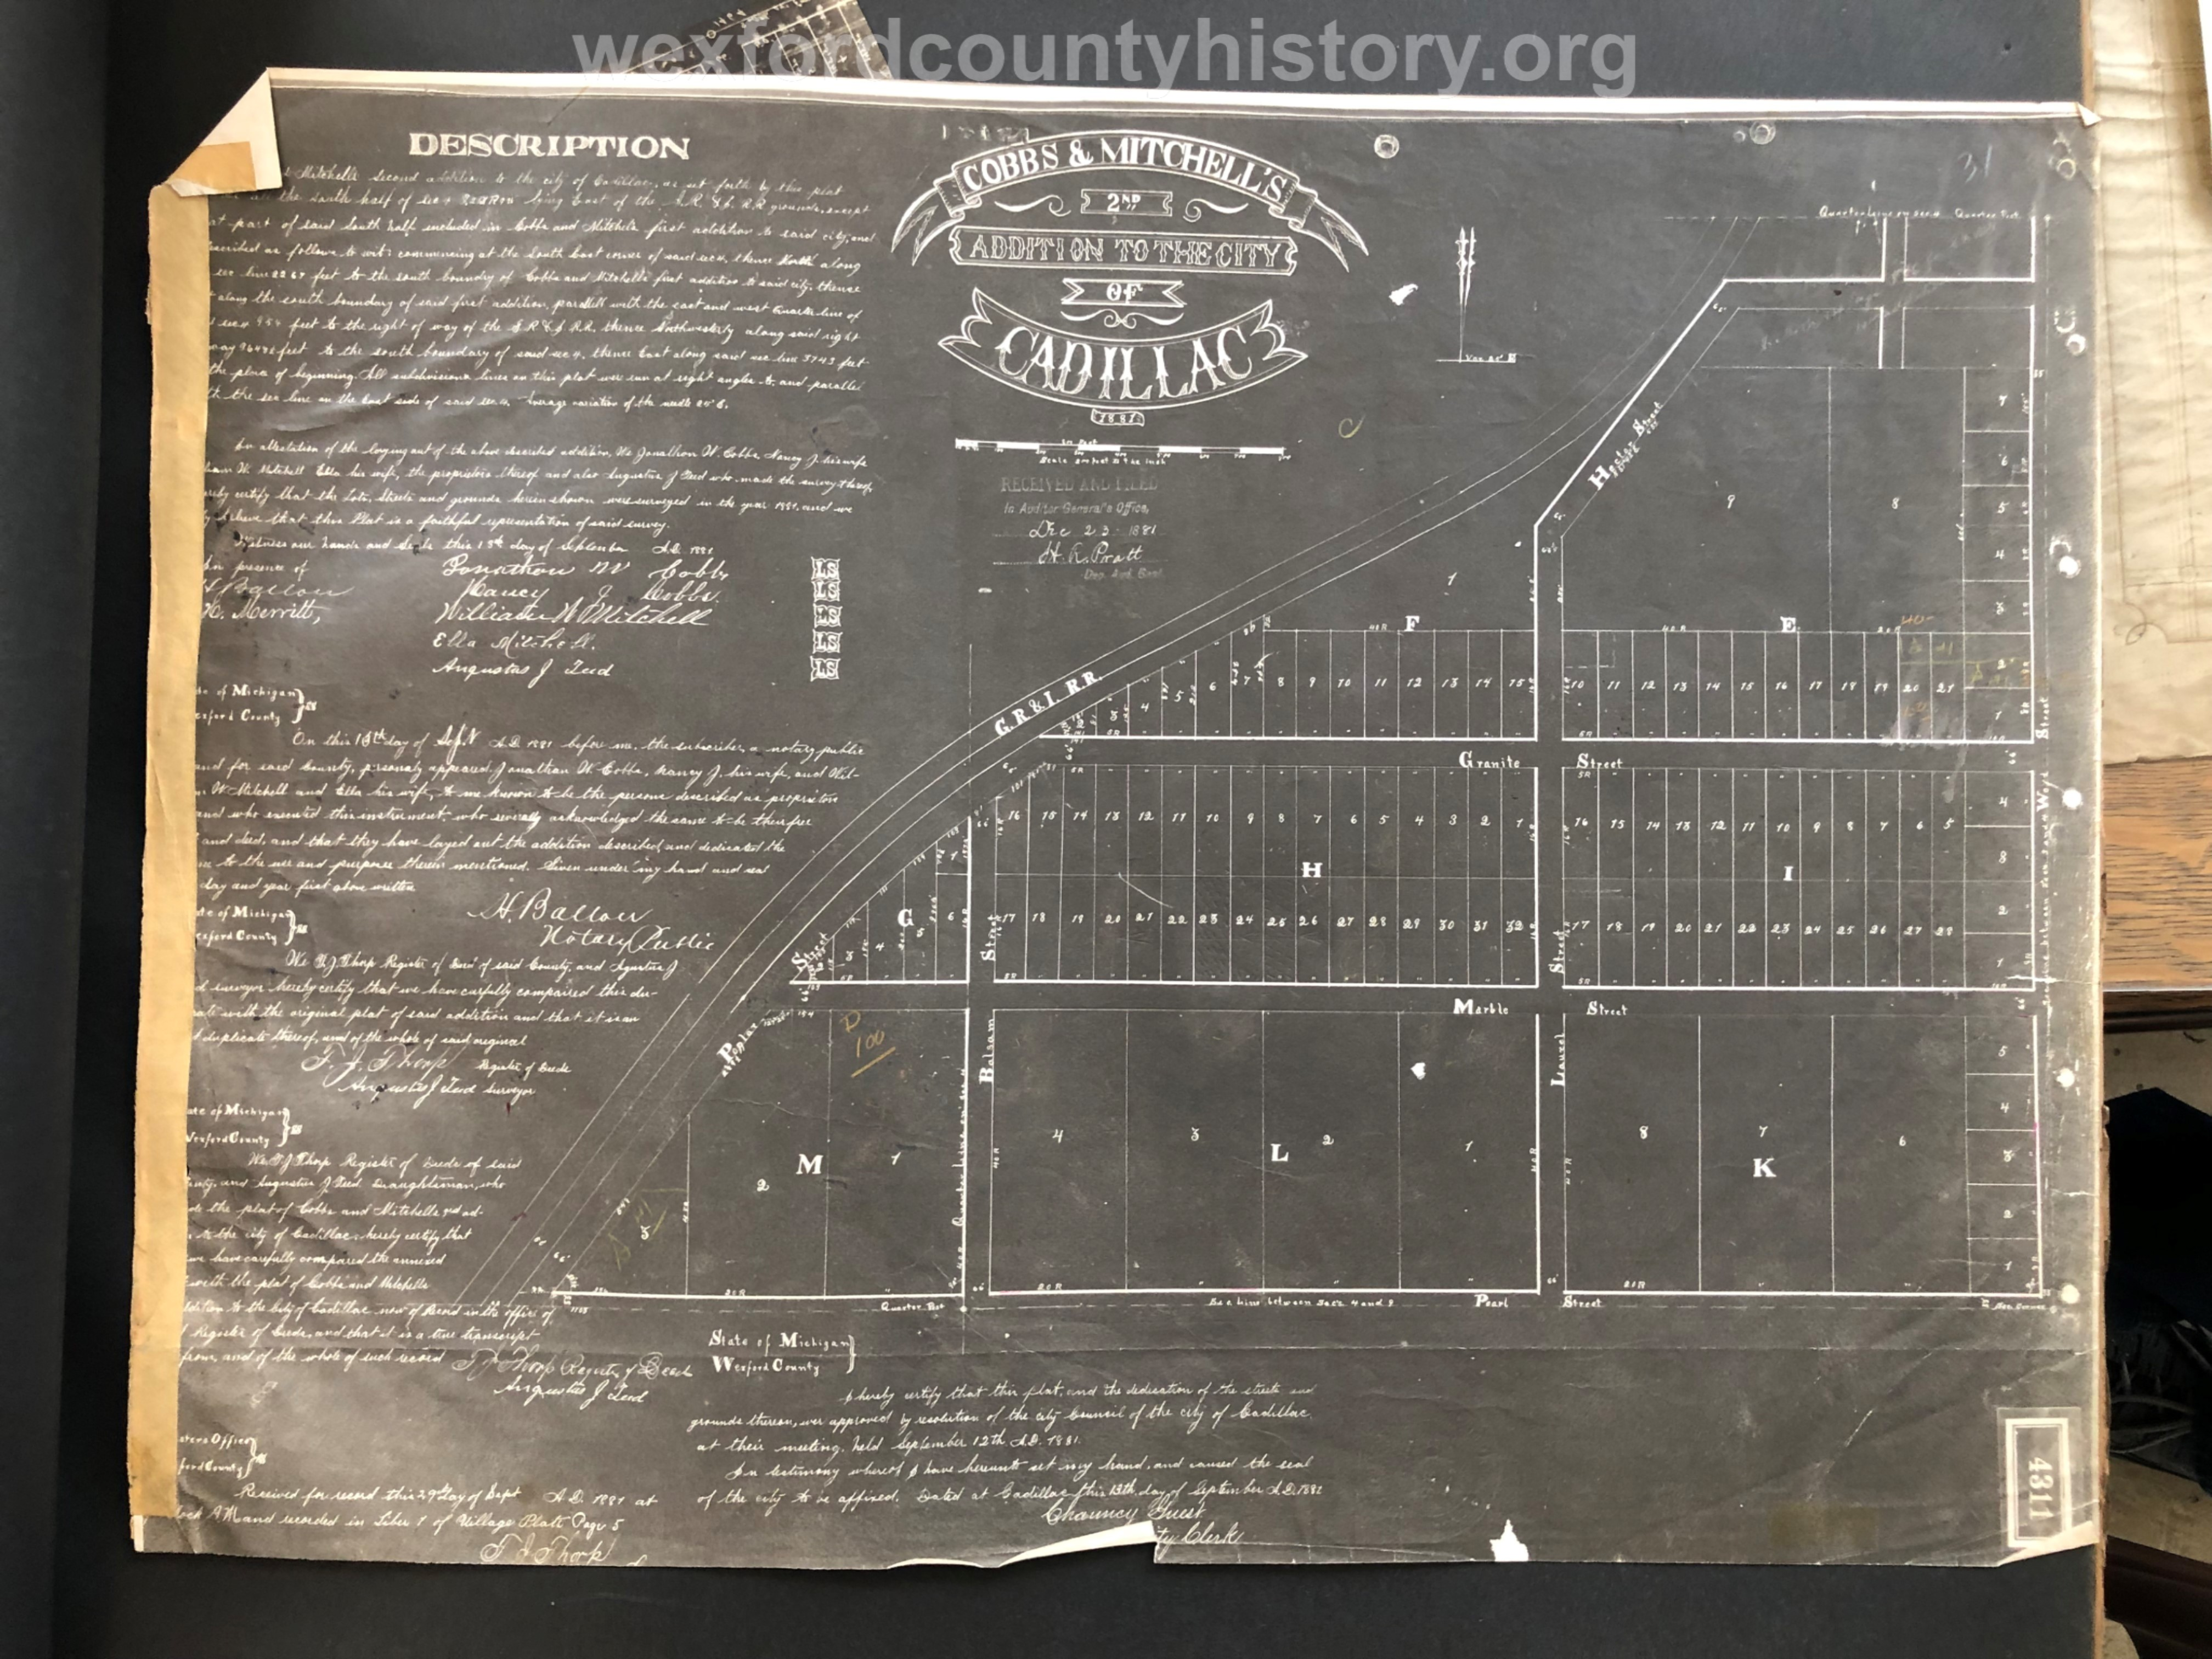 1881 - Cobbs And Mitchell's Second Addition To The City Of Cadillac